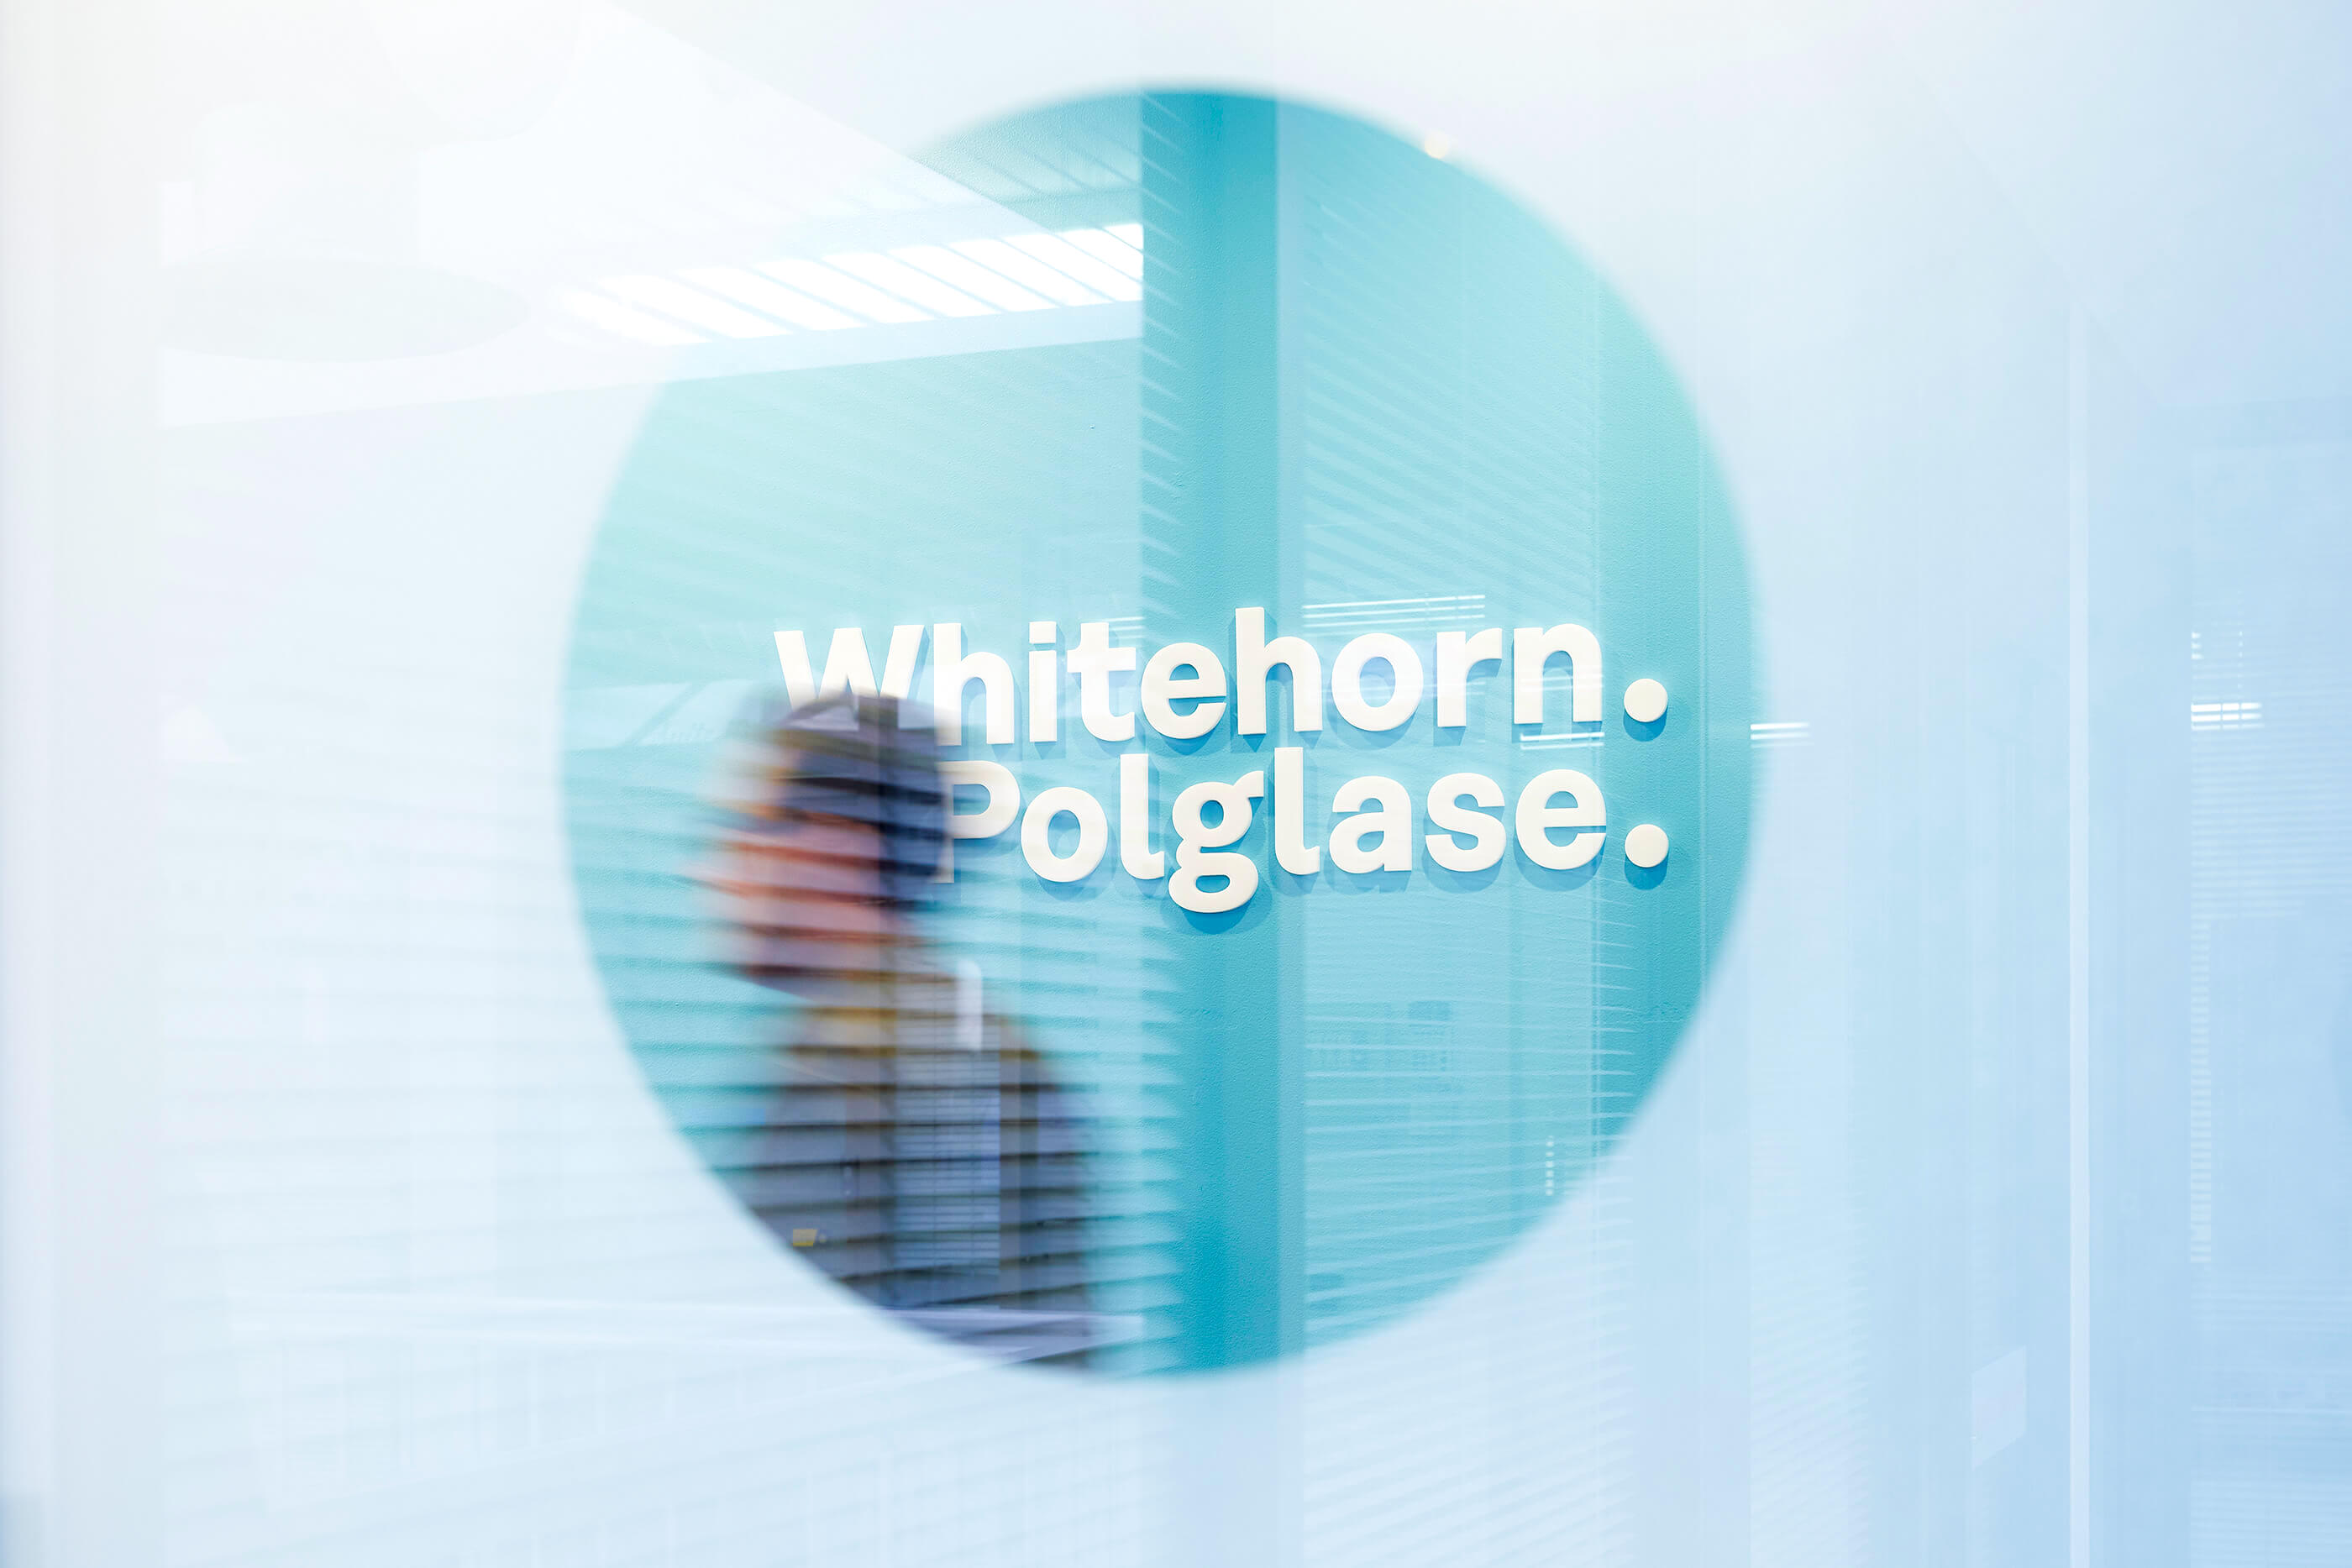 whitehorn_polglase_office_4